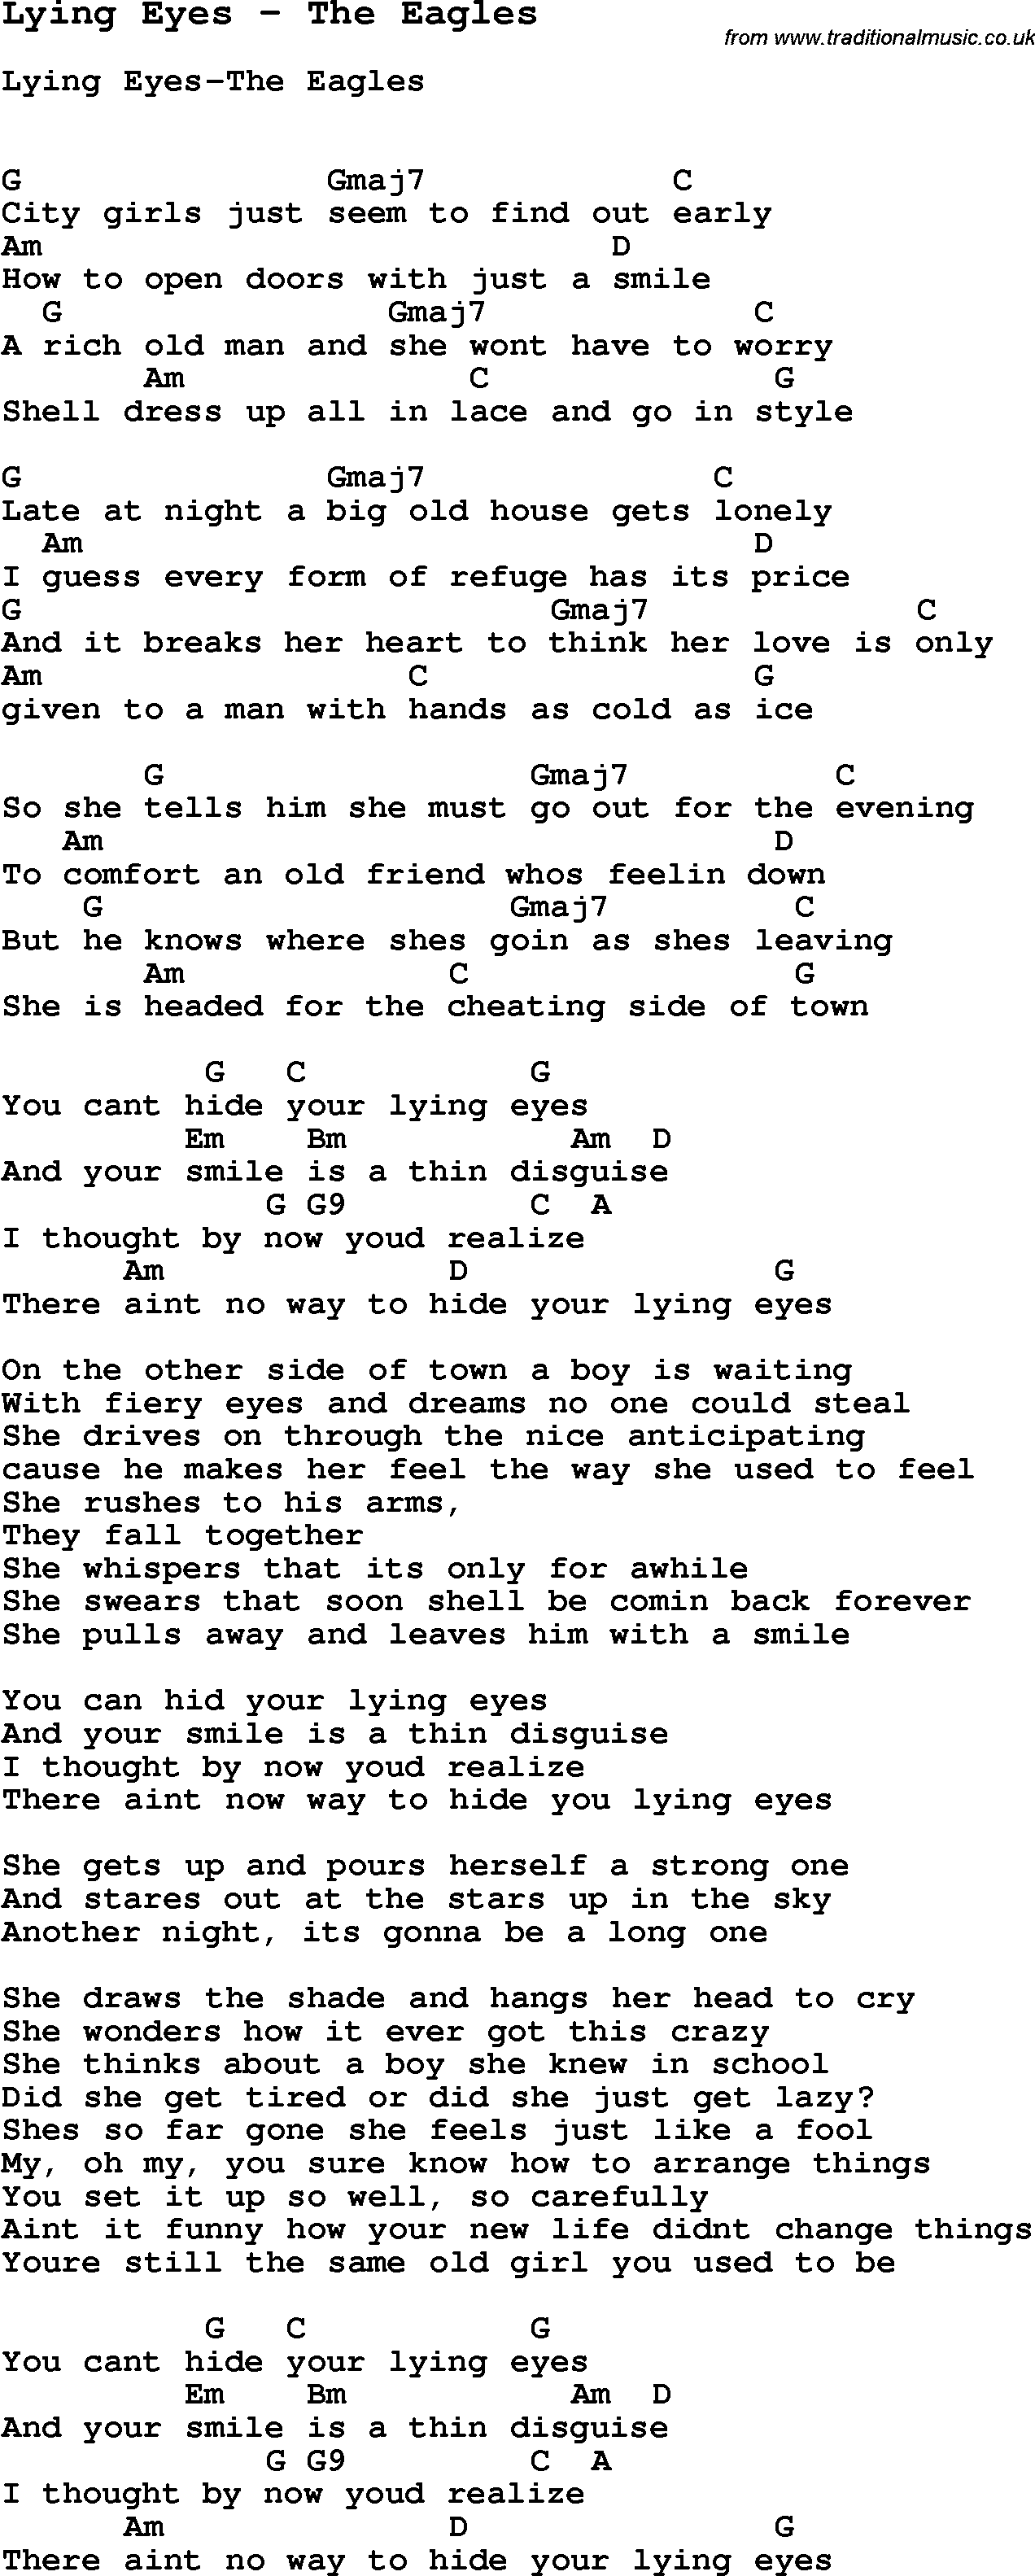 Lying Eyes The Eagles Guitar Chords For Songs Guitar Songs Lyrics And Chords